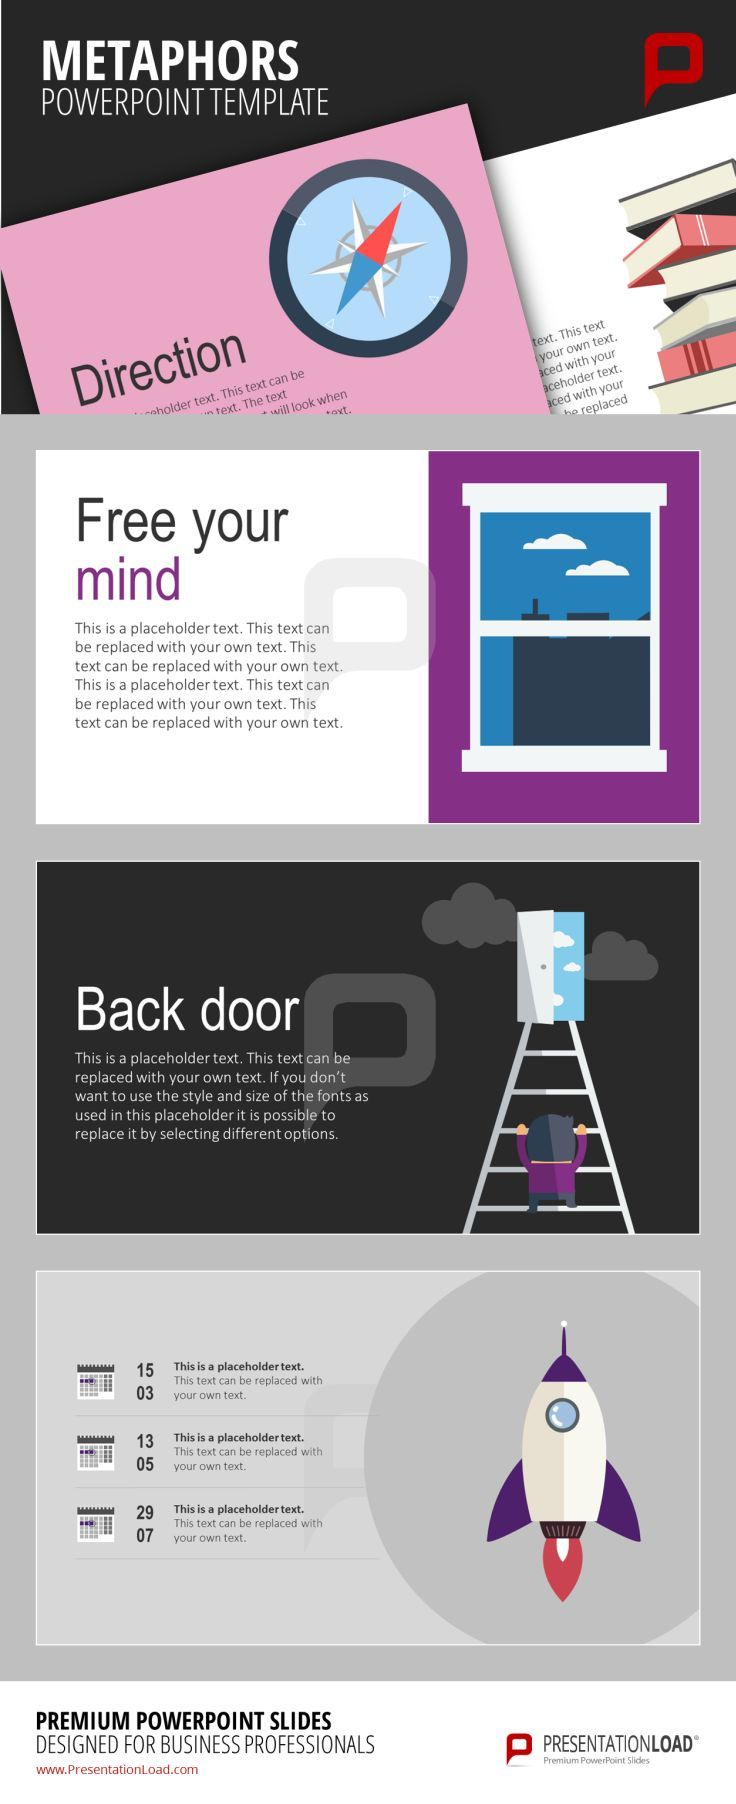 144 best flat design powerpoint templates images on pinterest flat design metaphor templates to inspire progress for the direction of your company http toneelgroepblik Gallery